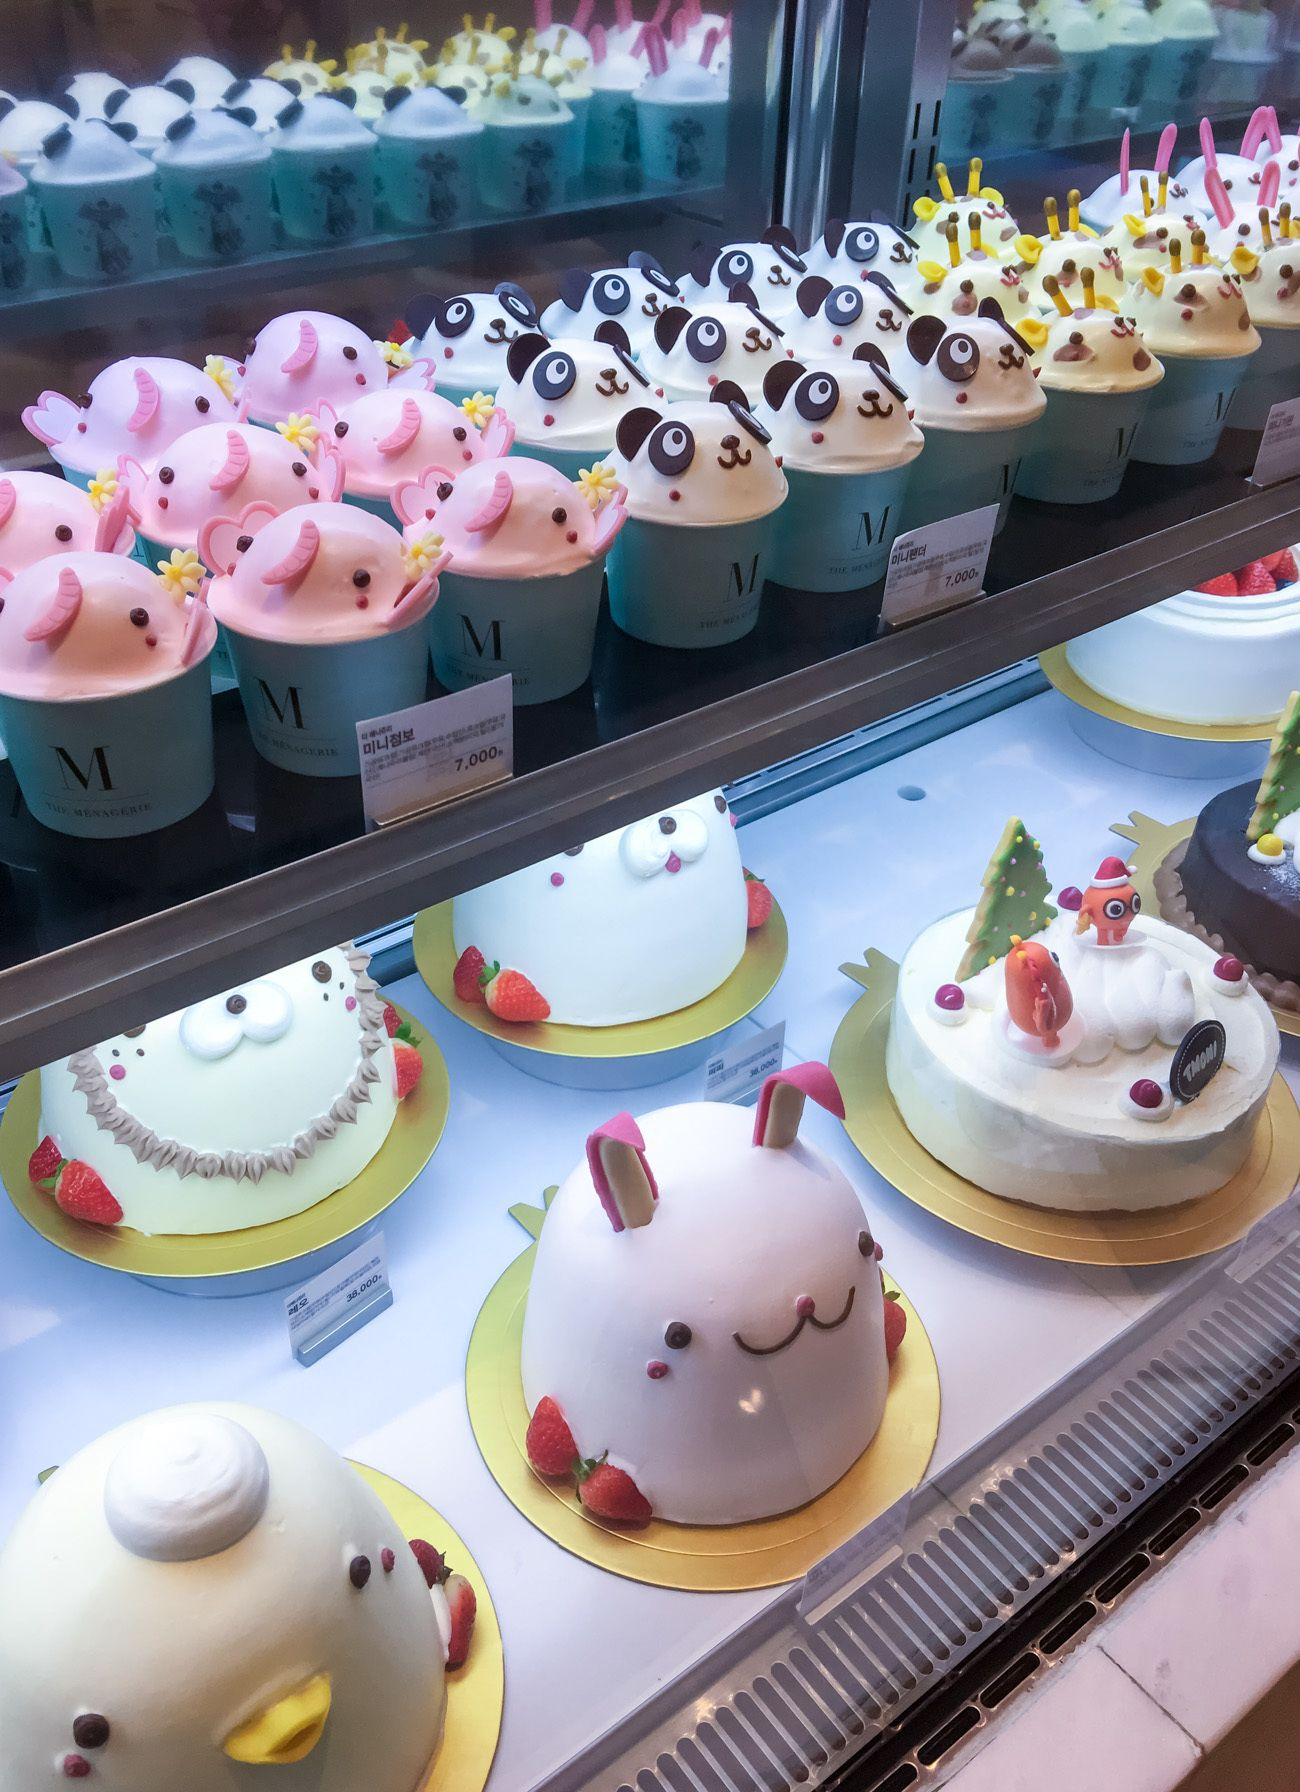 Adorable panda, bunny and other cakes in The Menagerie at Shinsegae department store food hall in Seoul.